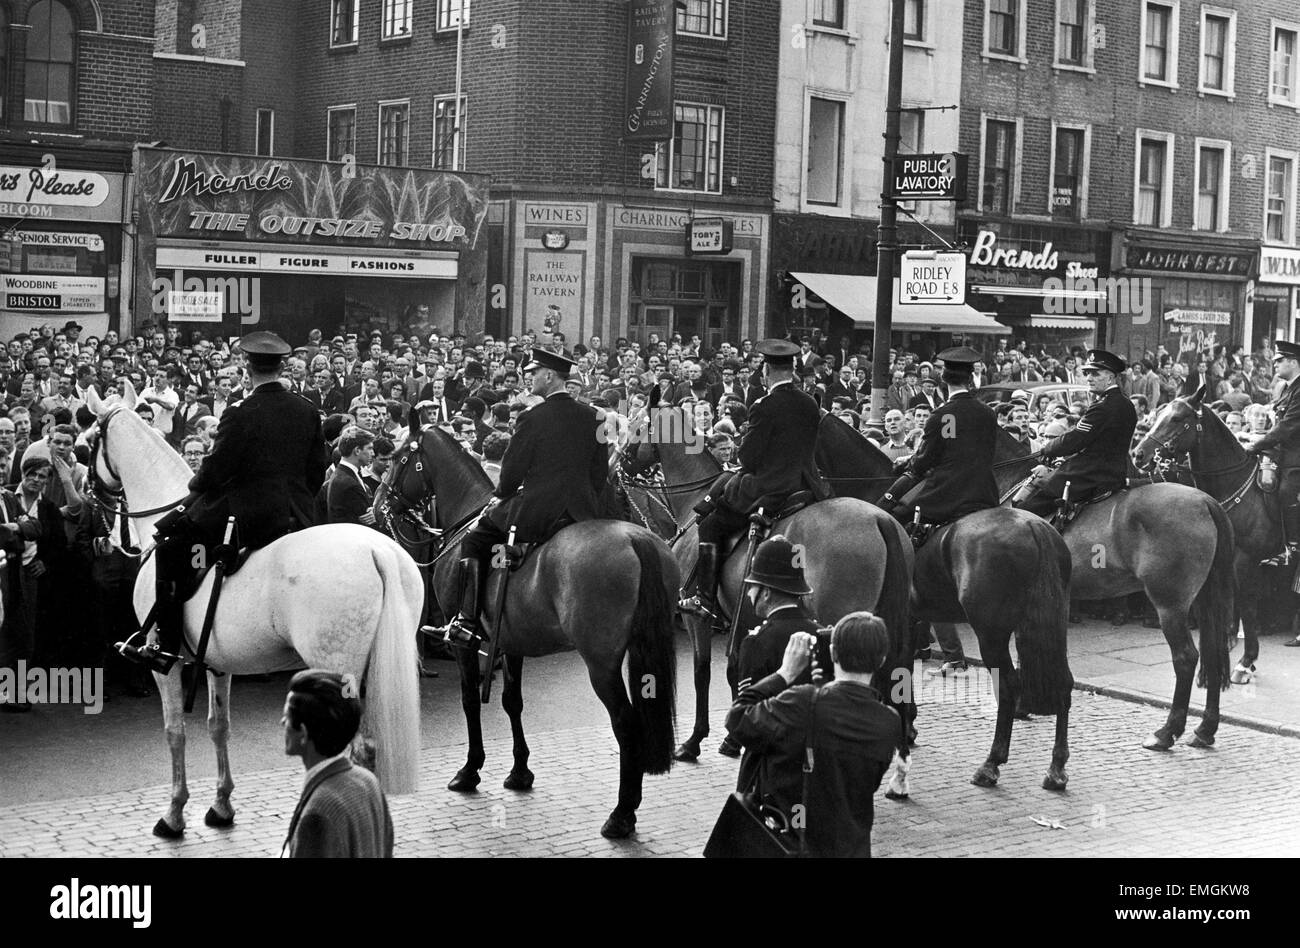 Mounted police seen here trying to control a large crowd gathered in Ridley Road E8 after former fascist leader - Stock Image